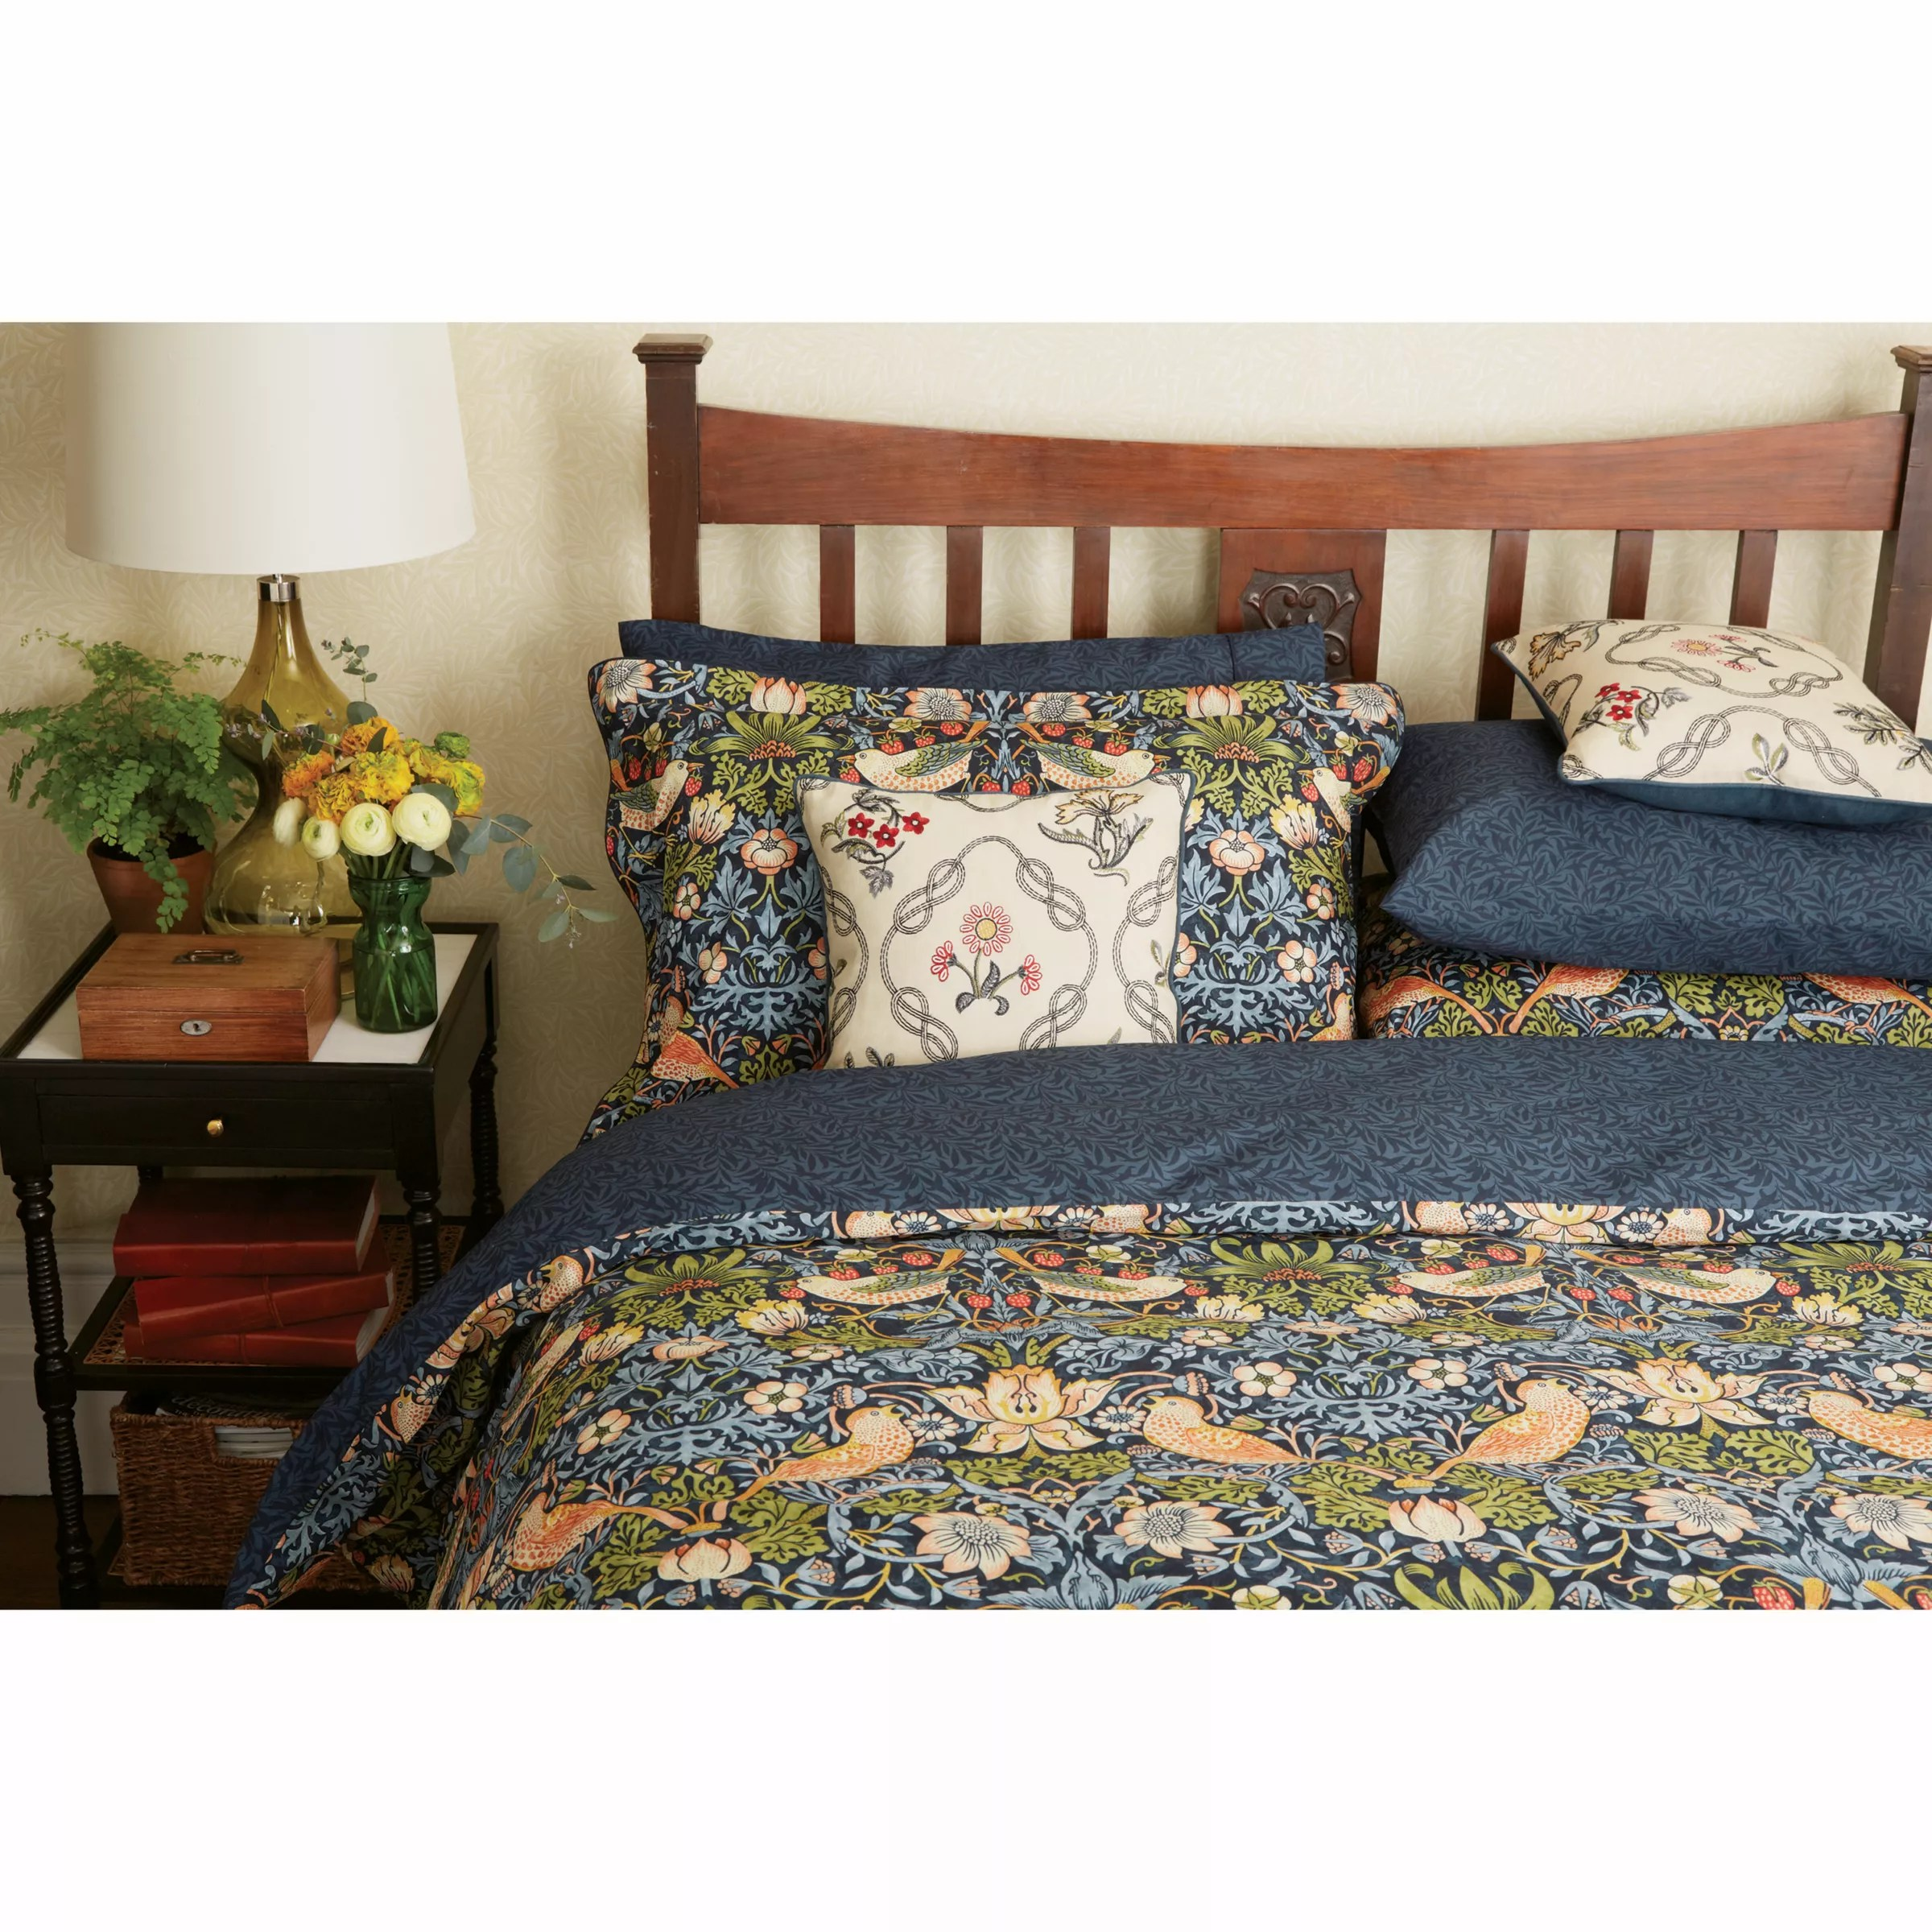 Crushed Velvet Bed Ebay Morris Co Strawberry Thief Cotton Bedding At John Lewis Partners